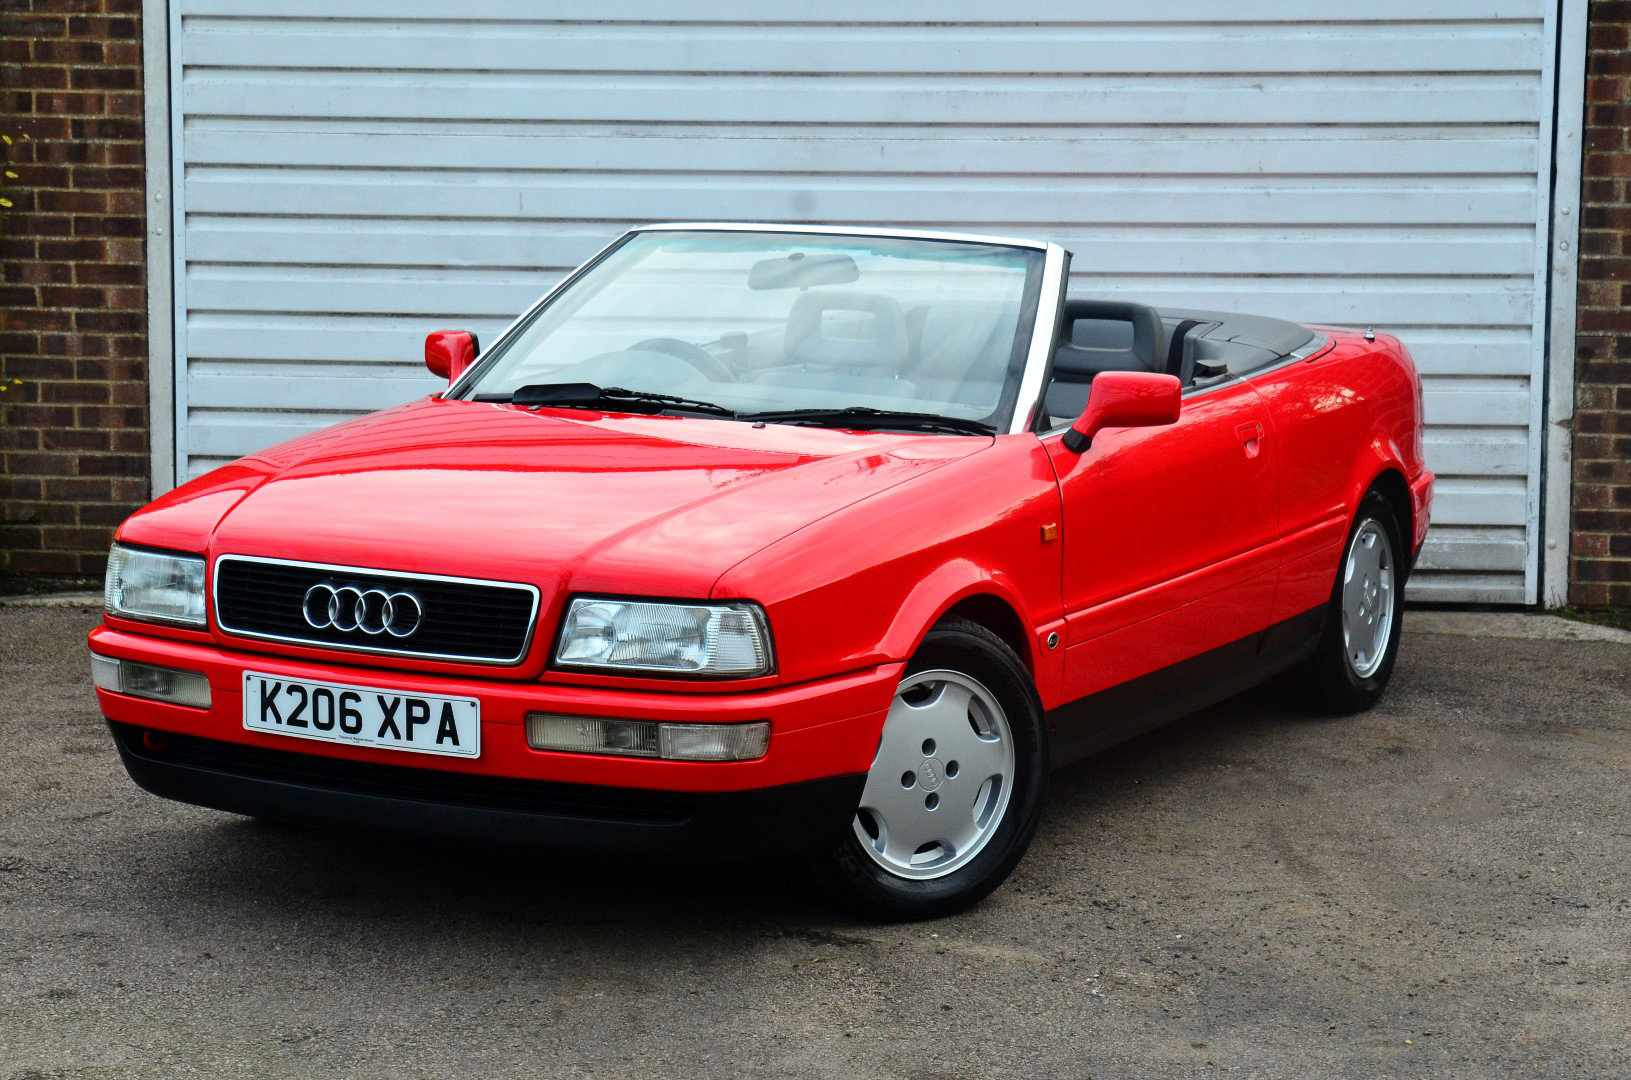 1993 Audi Cabriolet 2.3 Manual For Sale (picture 2 of 6)